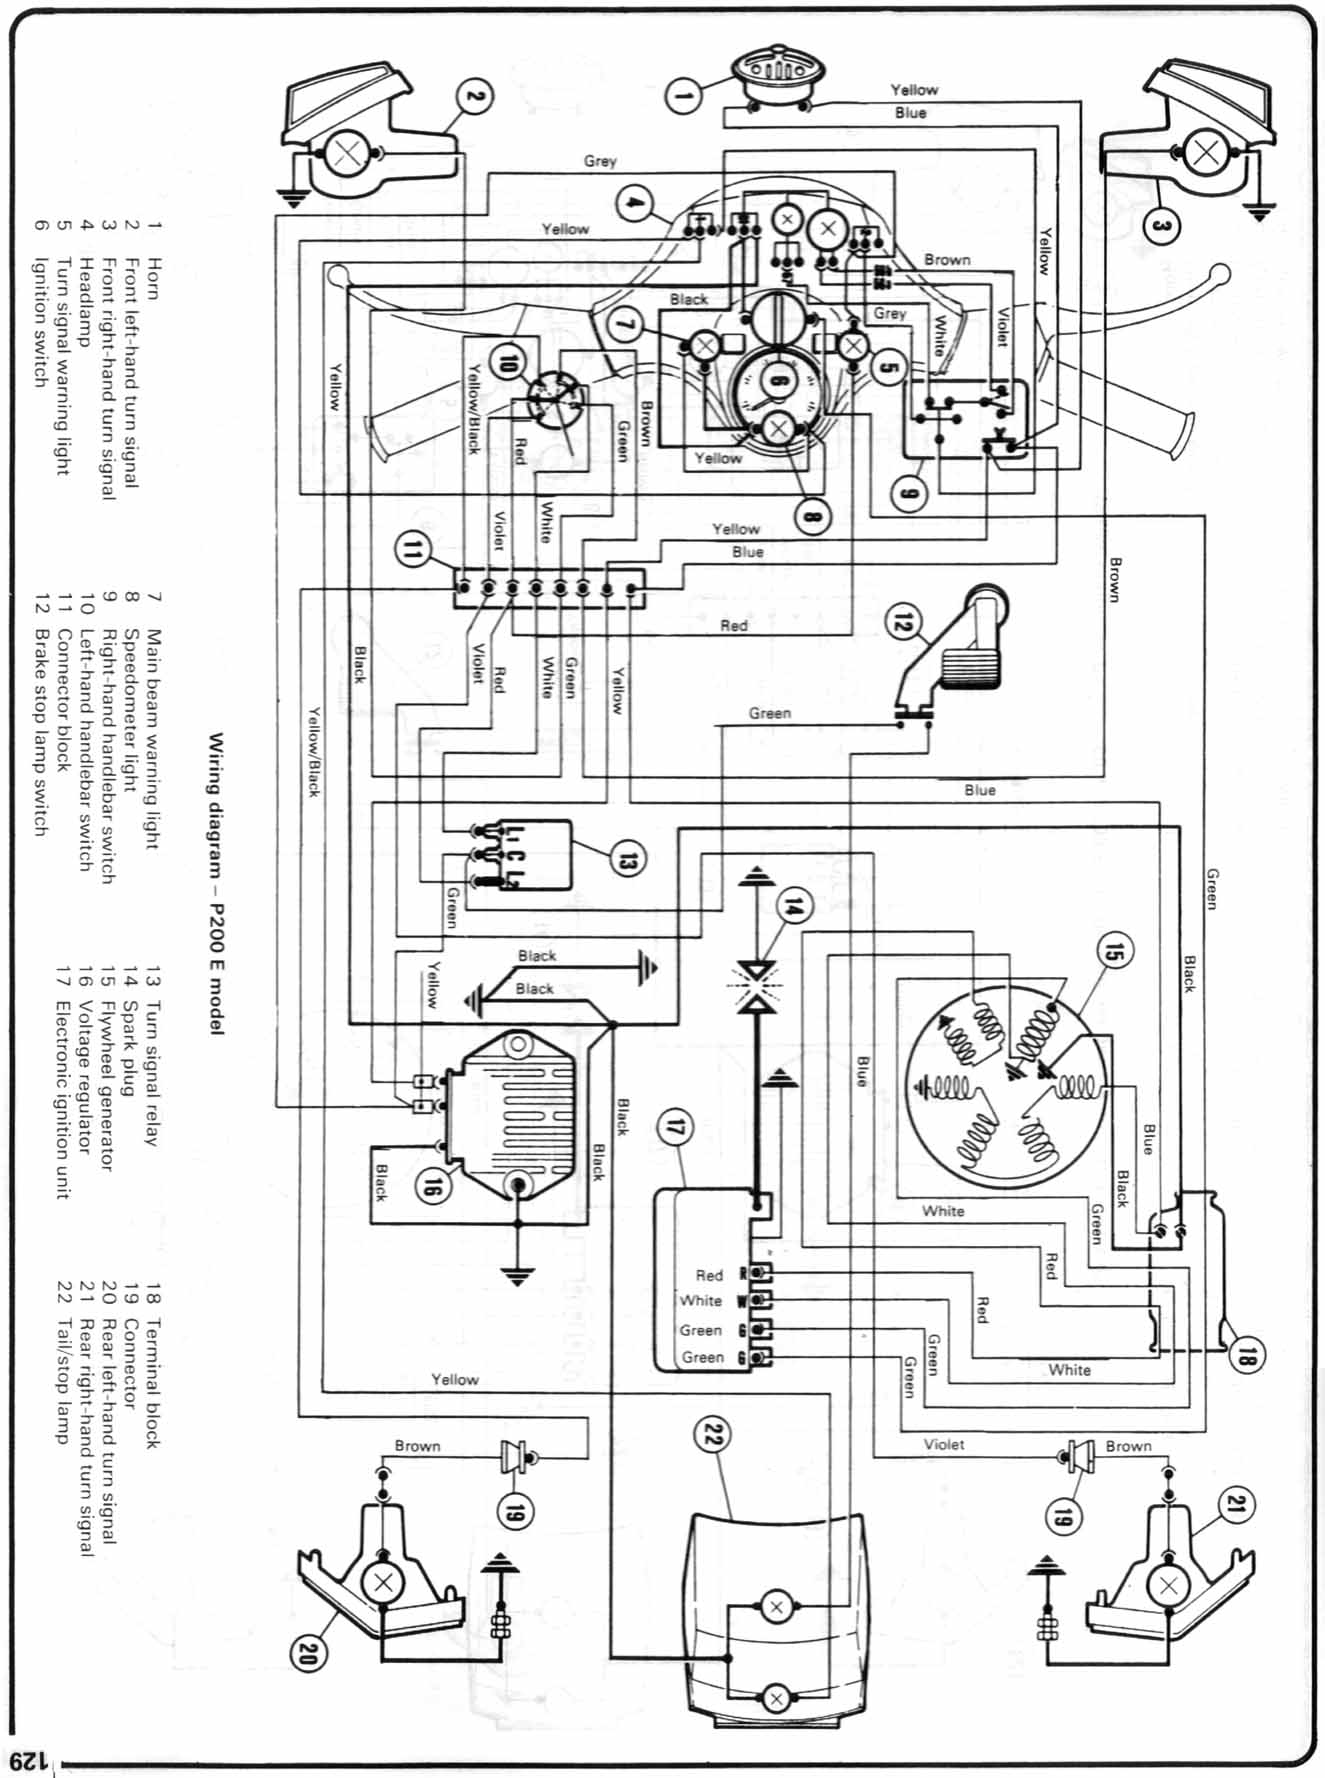 p200diag1 modern vespa seeking advice on an overly ambitious electrical vespa p125x wiring diagram at highcare.asia